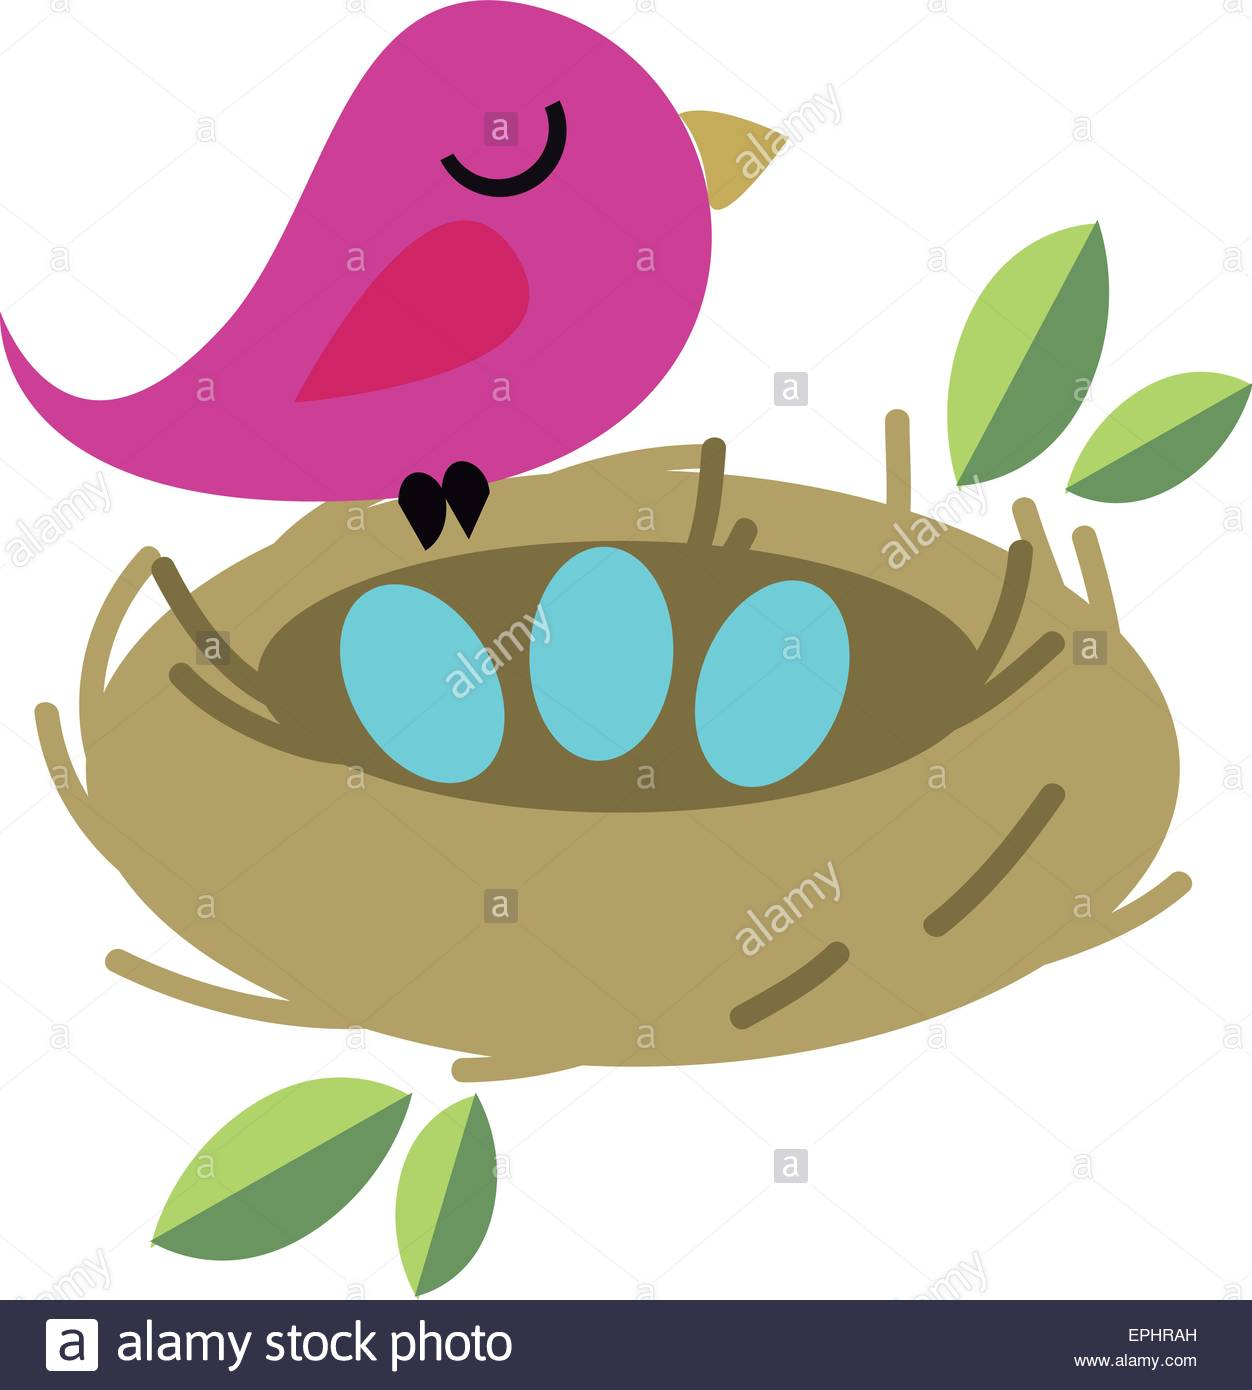 1252x1390 Vector Illustration Of Tiny Bird With Eggs In A Nest. Nature